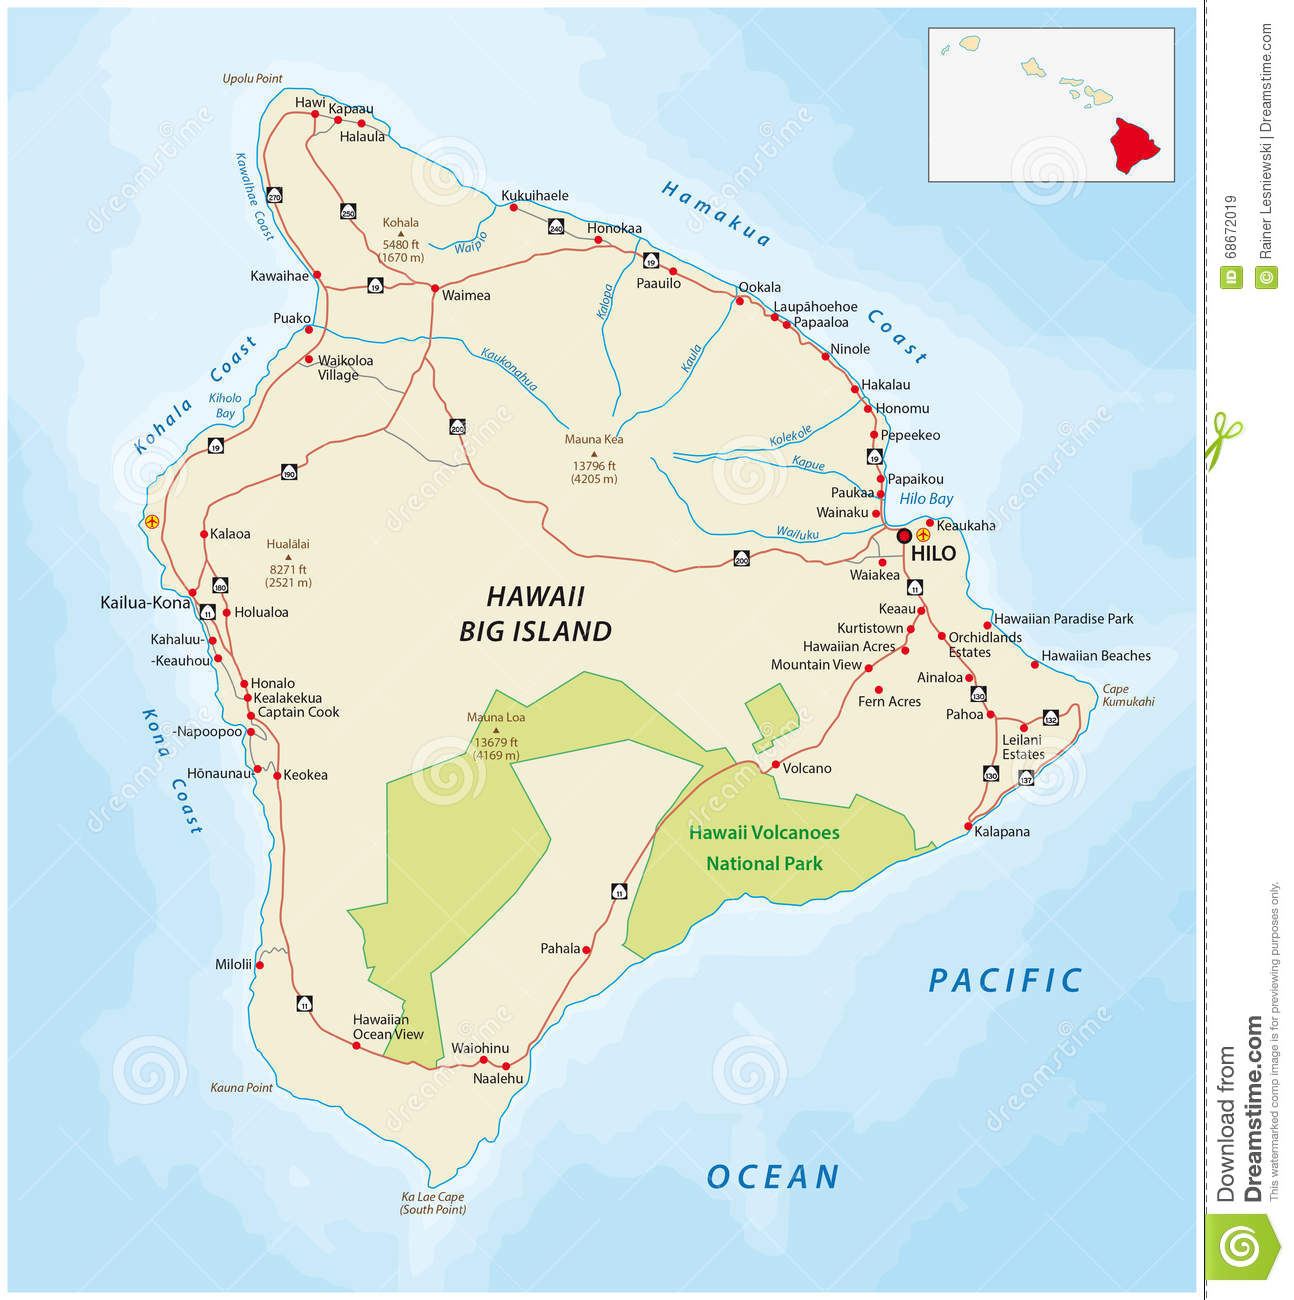 Big Island Hawaii Road Map Stock Illustration Illustration Of